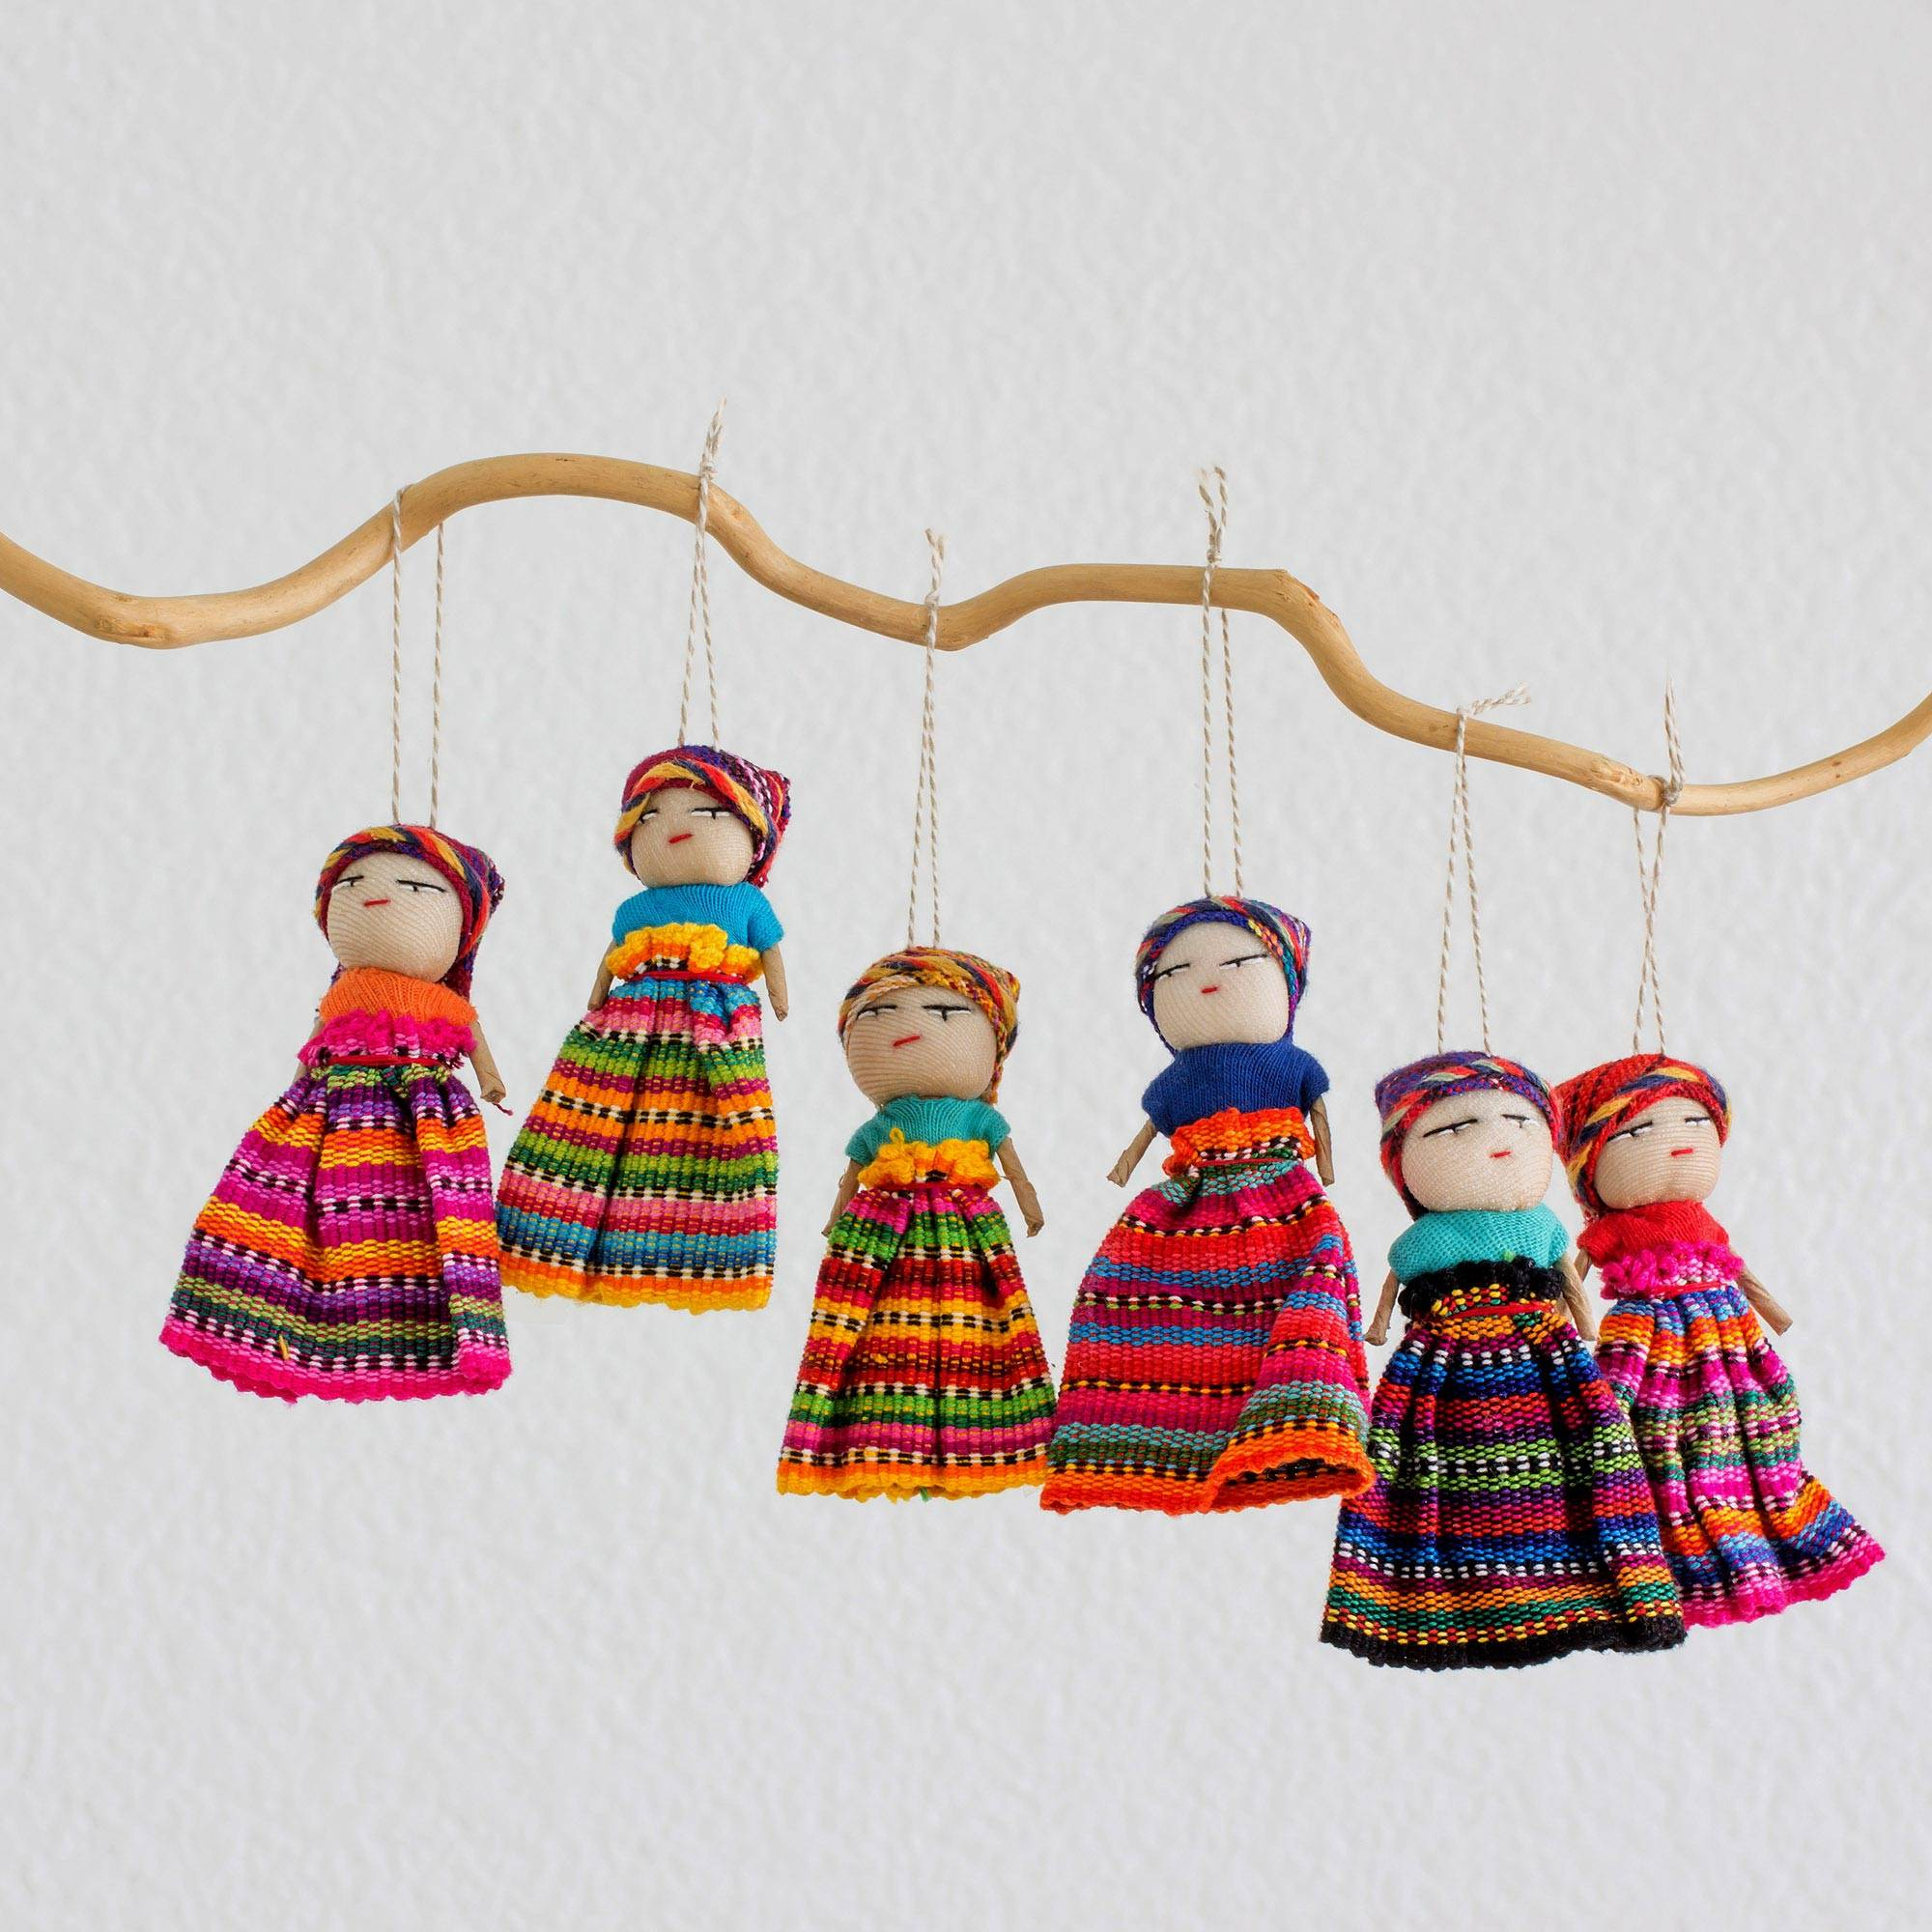 Worry Dolls Share the Love Set of 6 Guatemalan Worry Doll Ornaments Crafted by Hand